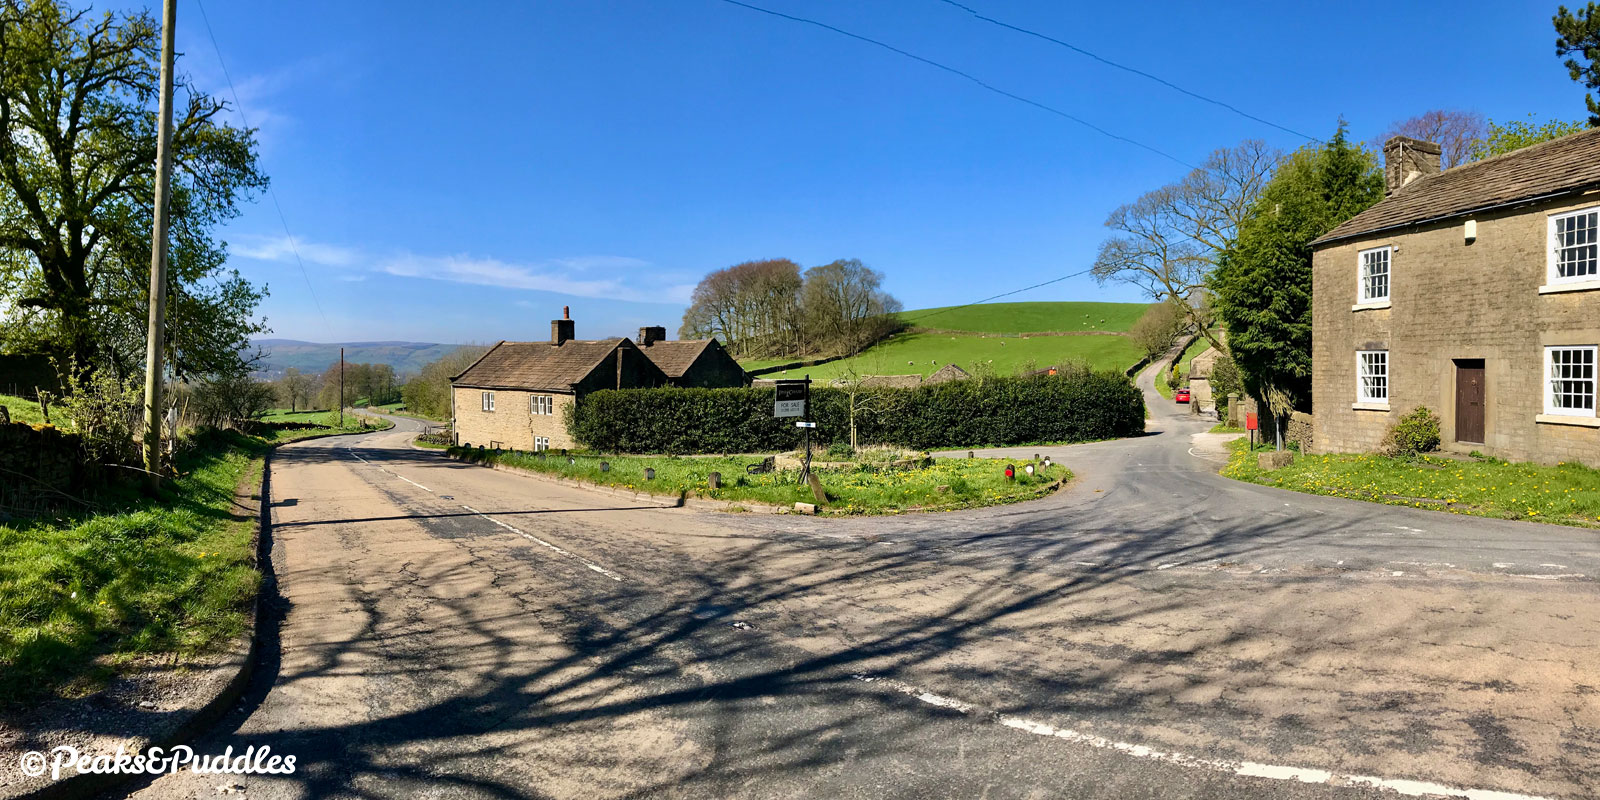 Looking back over Sheffield Road, which climbs up from Chapel-en-le-Frith, to the cottages at Slackhall.